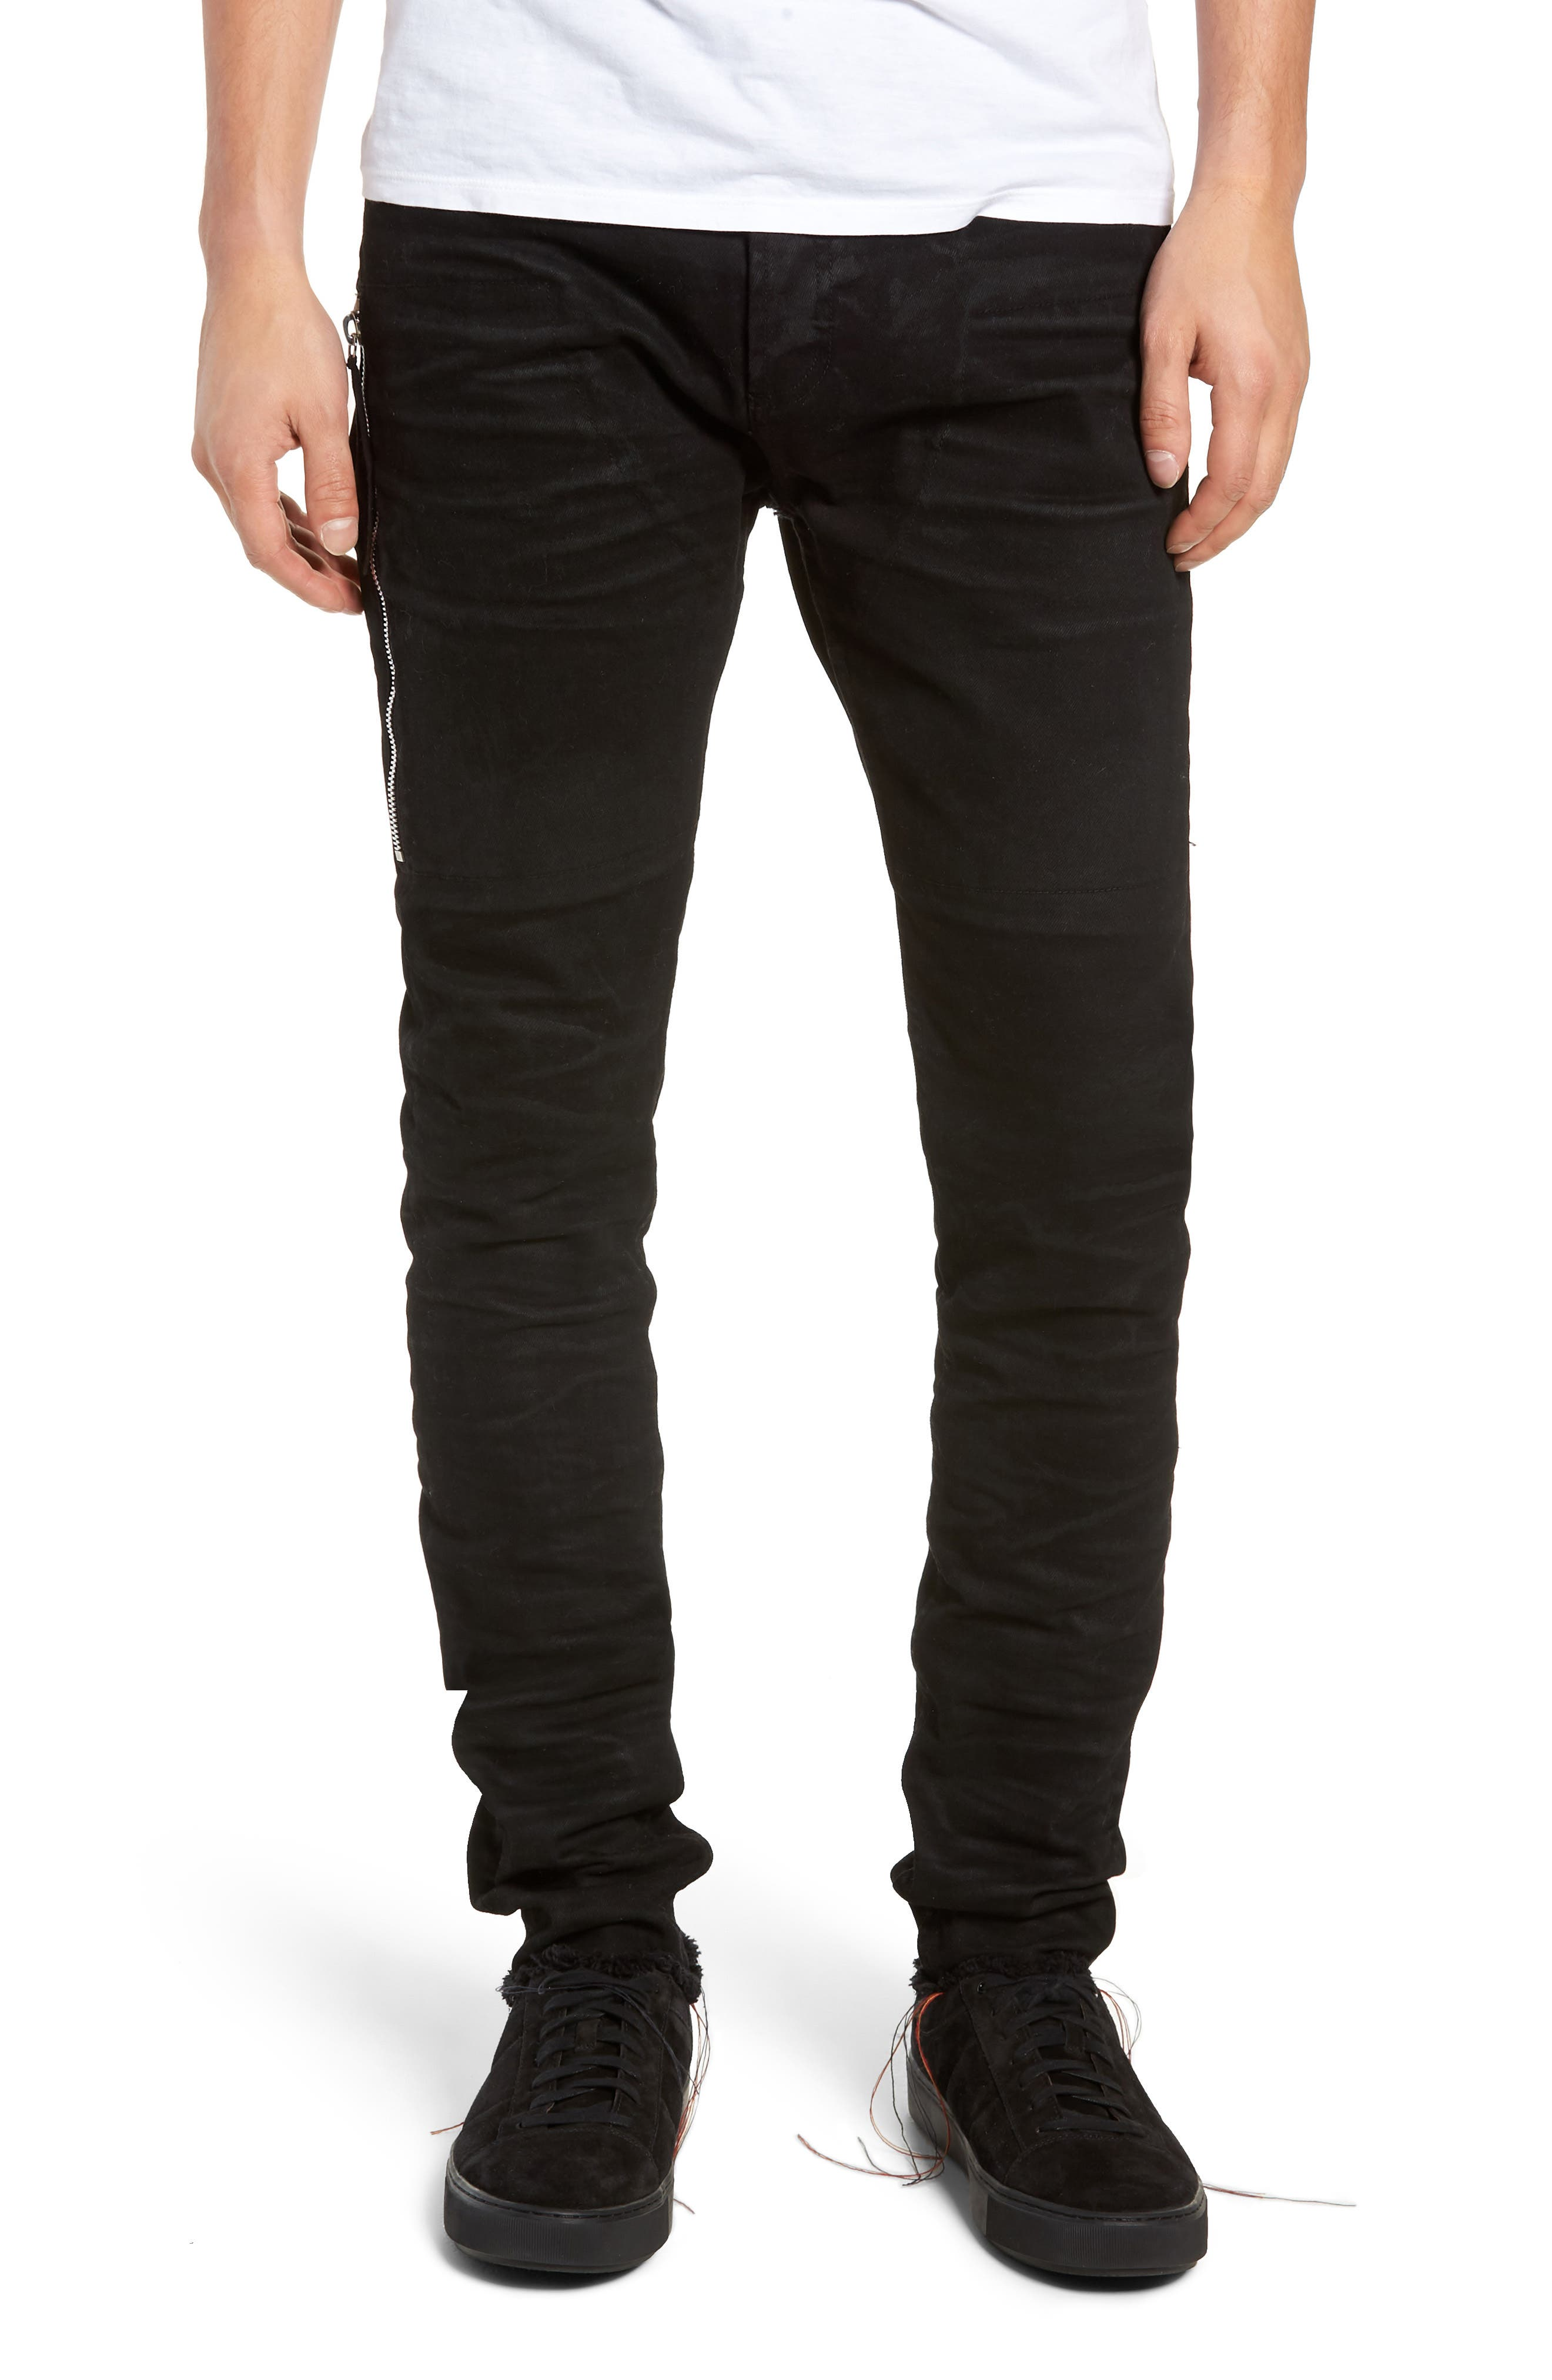 Trafford Skinny Fit Jeans,                             Main thumbnail 1, color,                             HERITAGE WAX